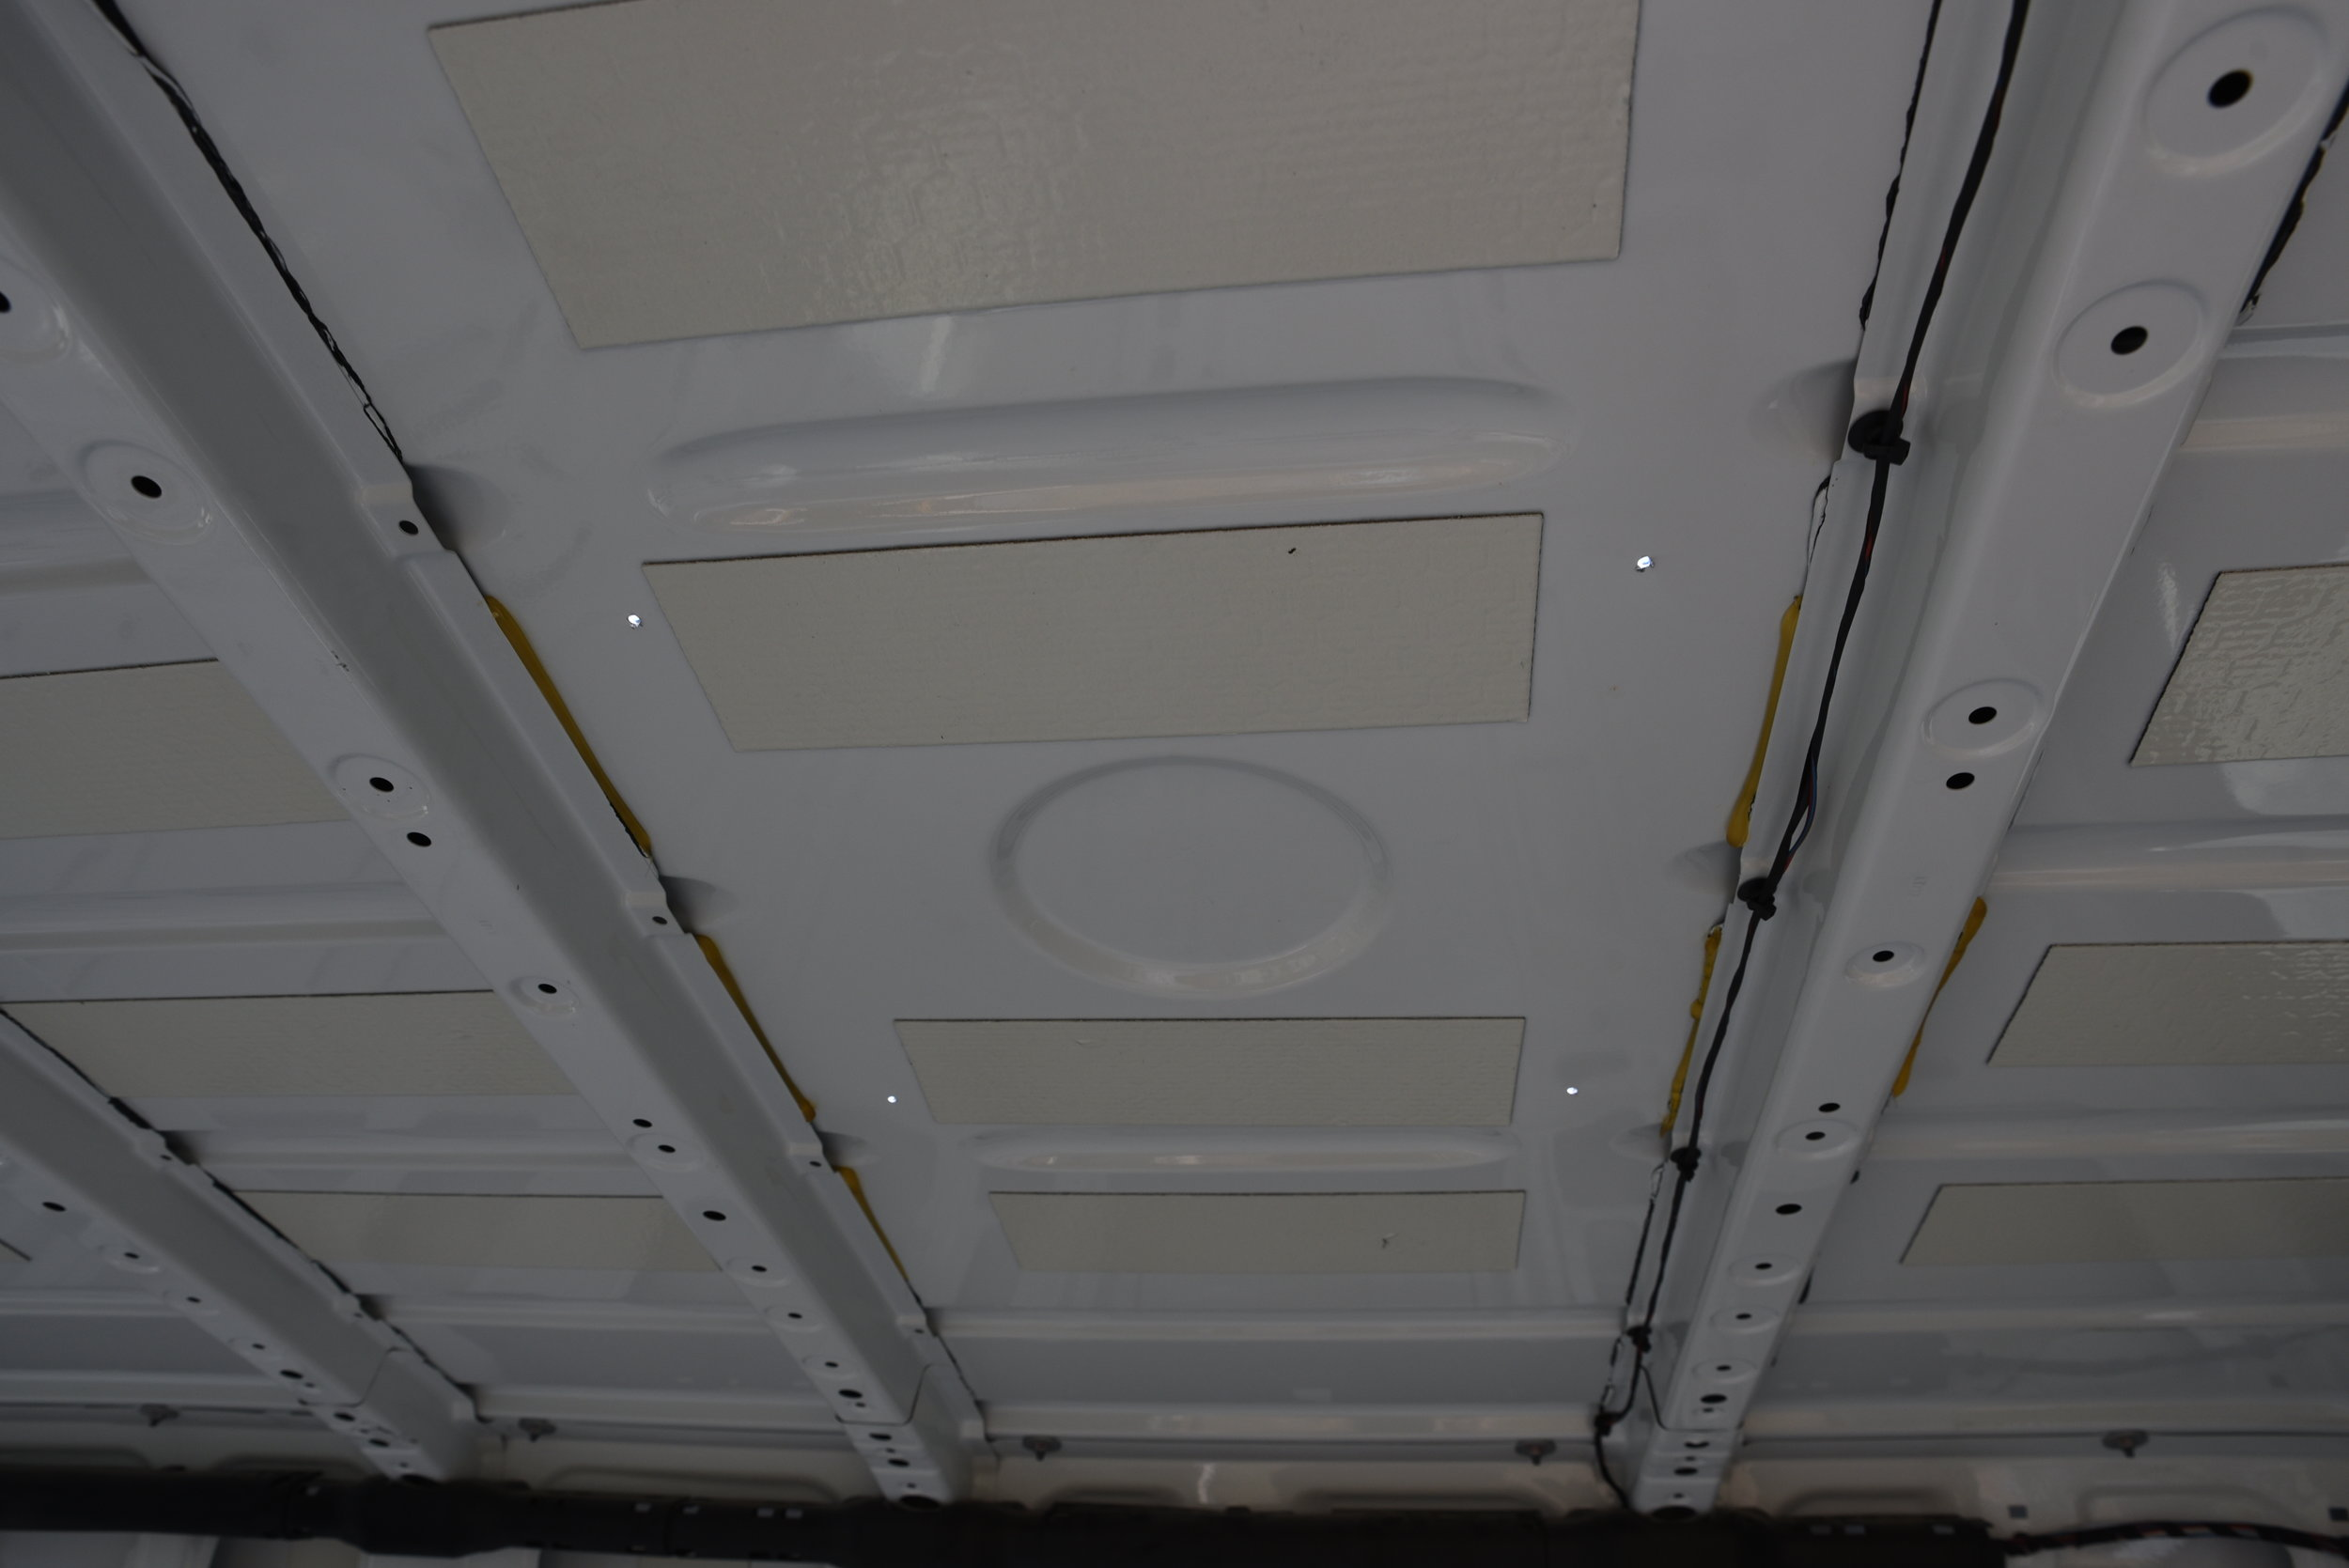 You can see the four corners of our fan drilled into the ceiling in this picture.